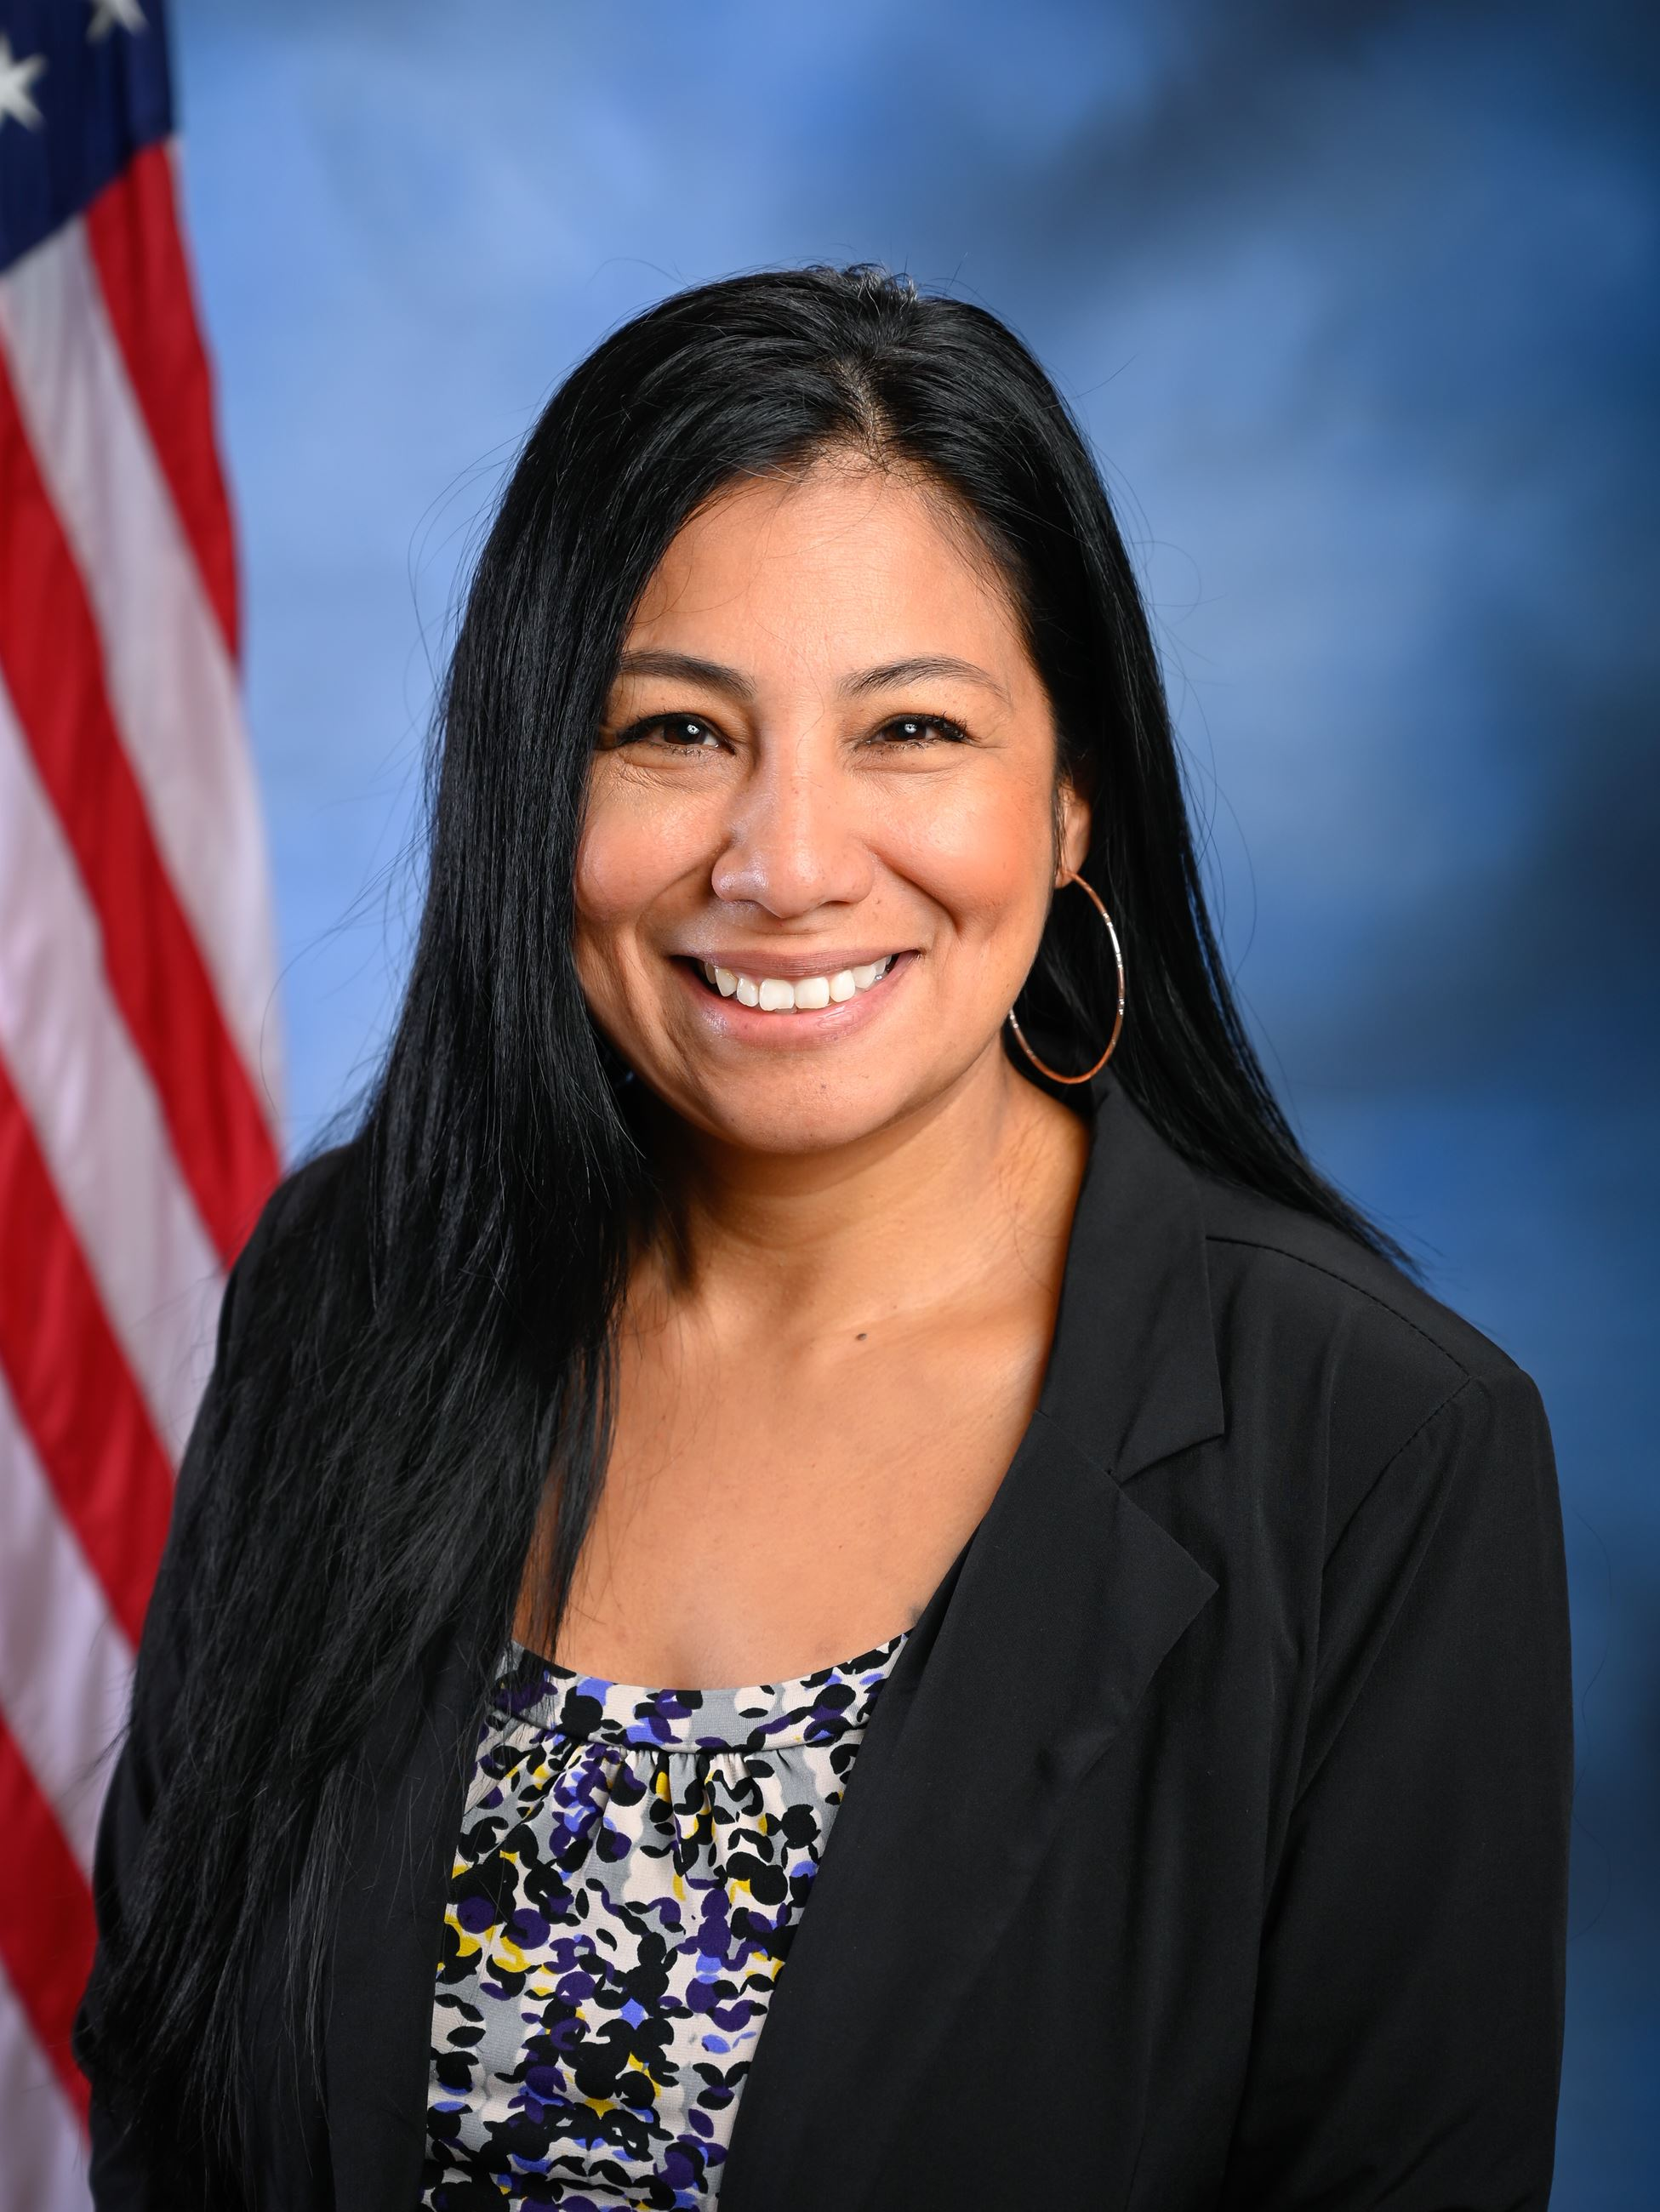 Photo of Lori Diaz